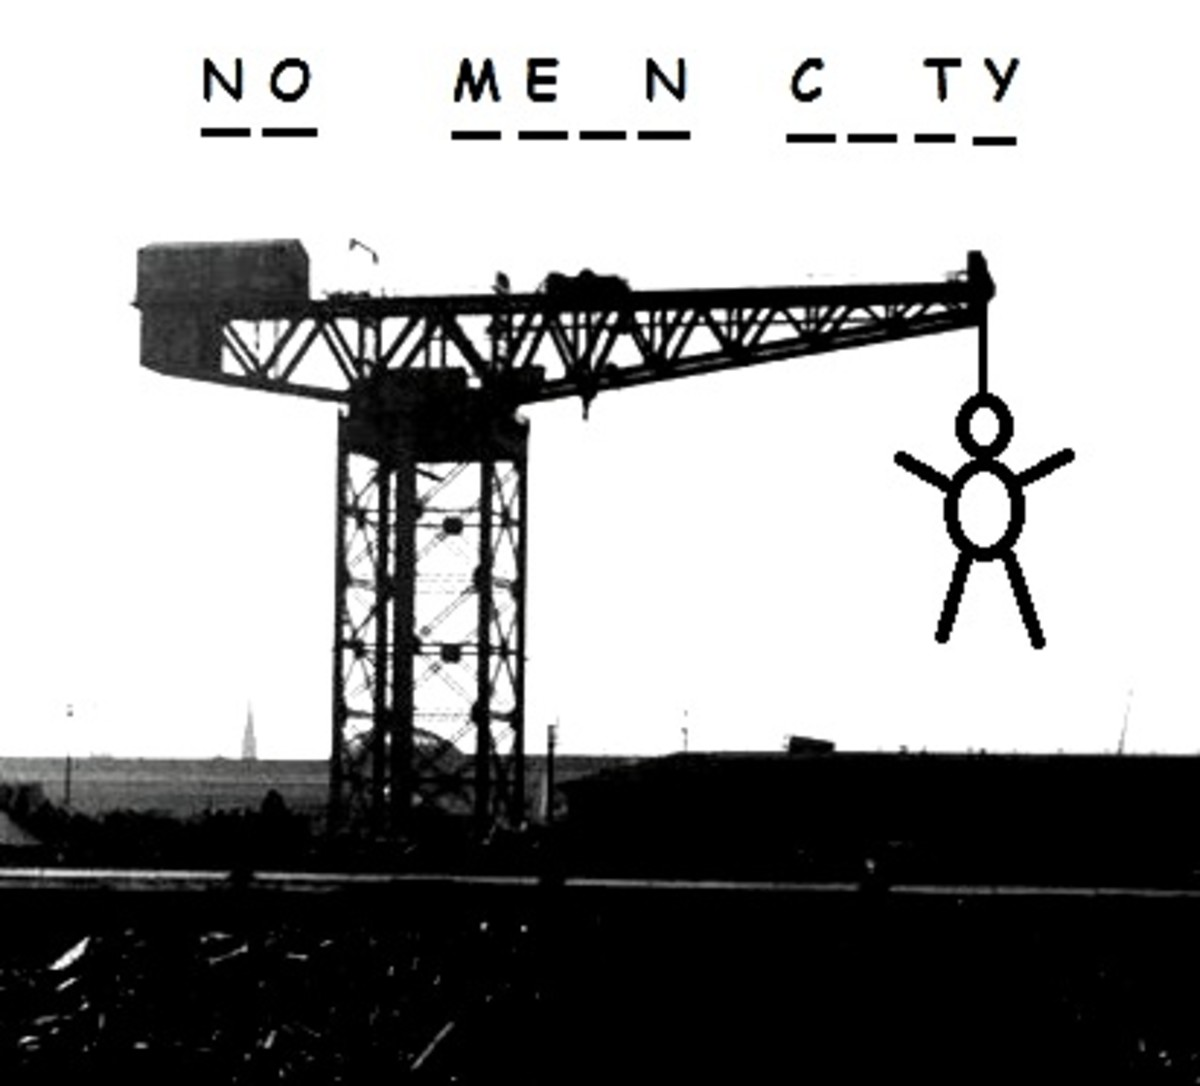 glasgow - no mean city